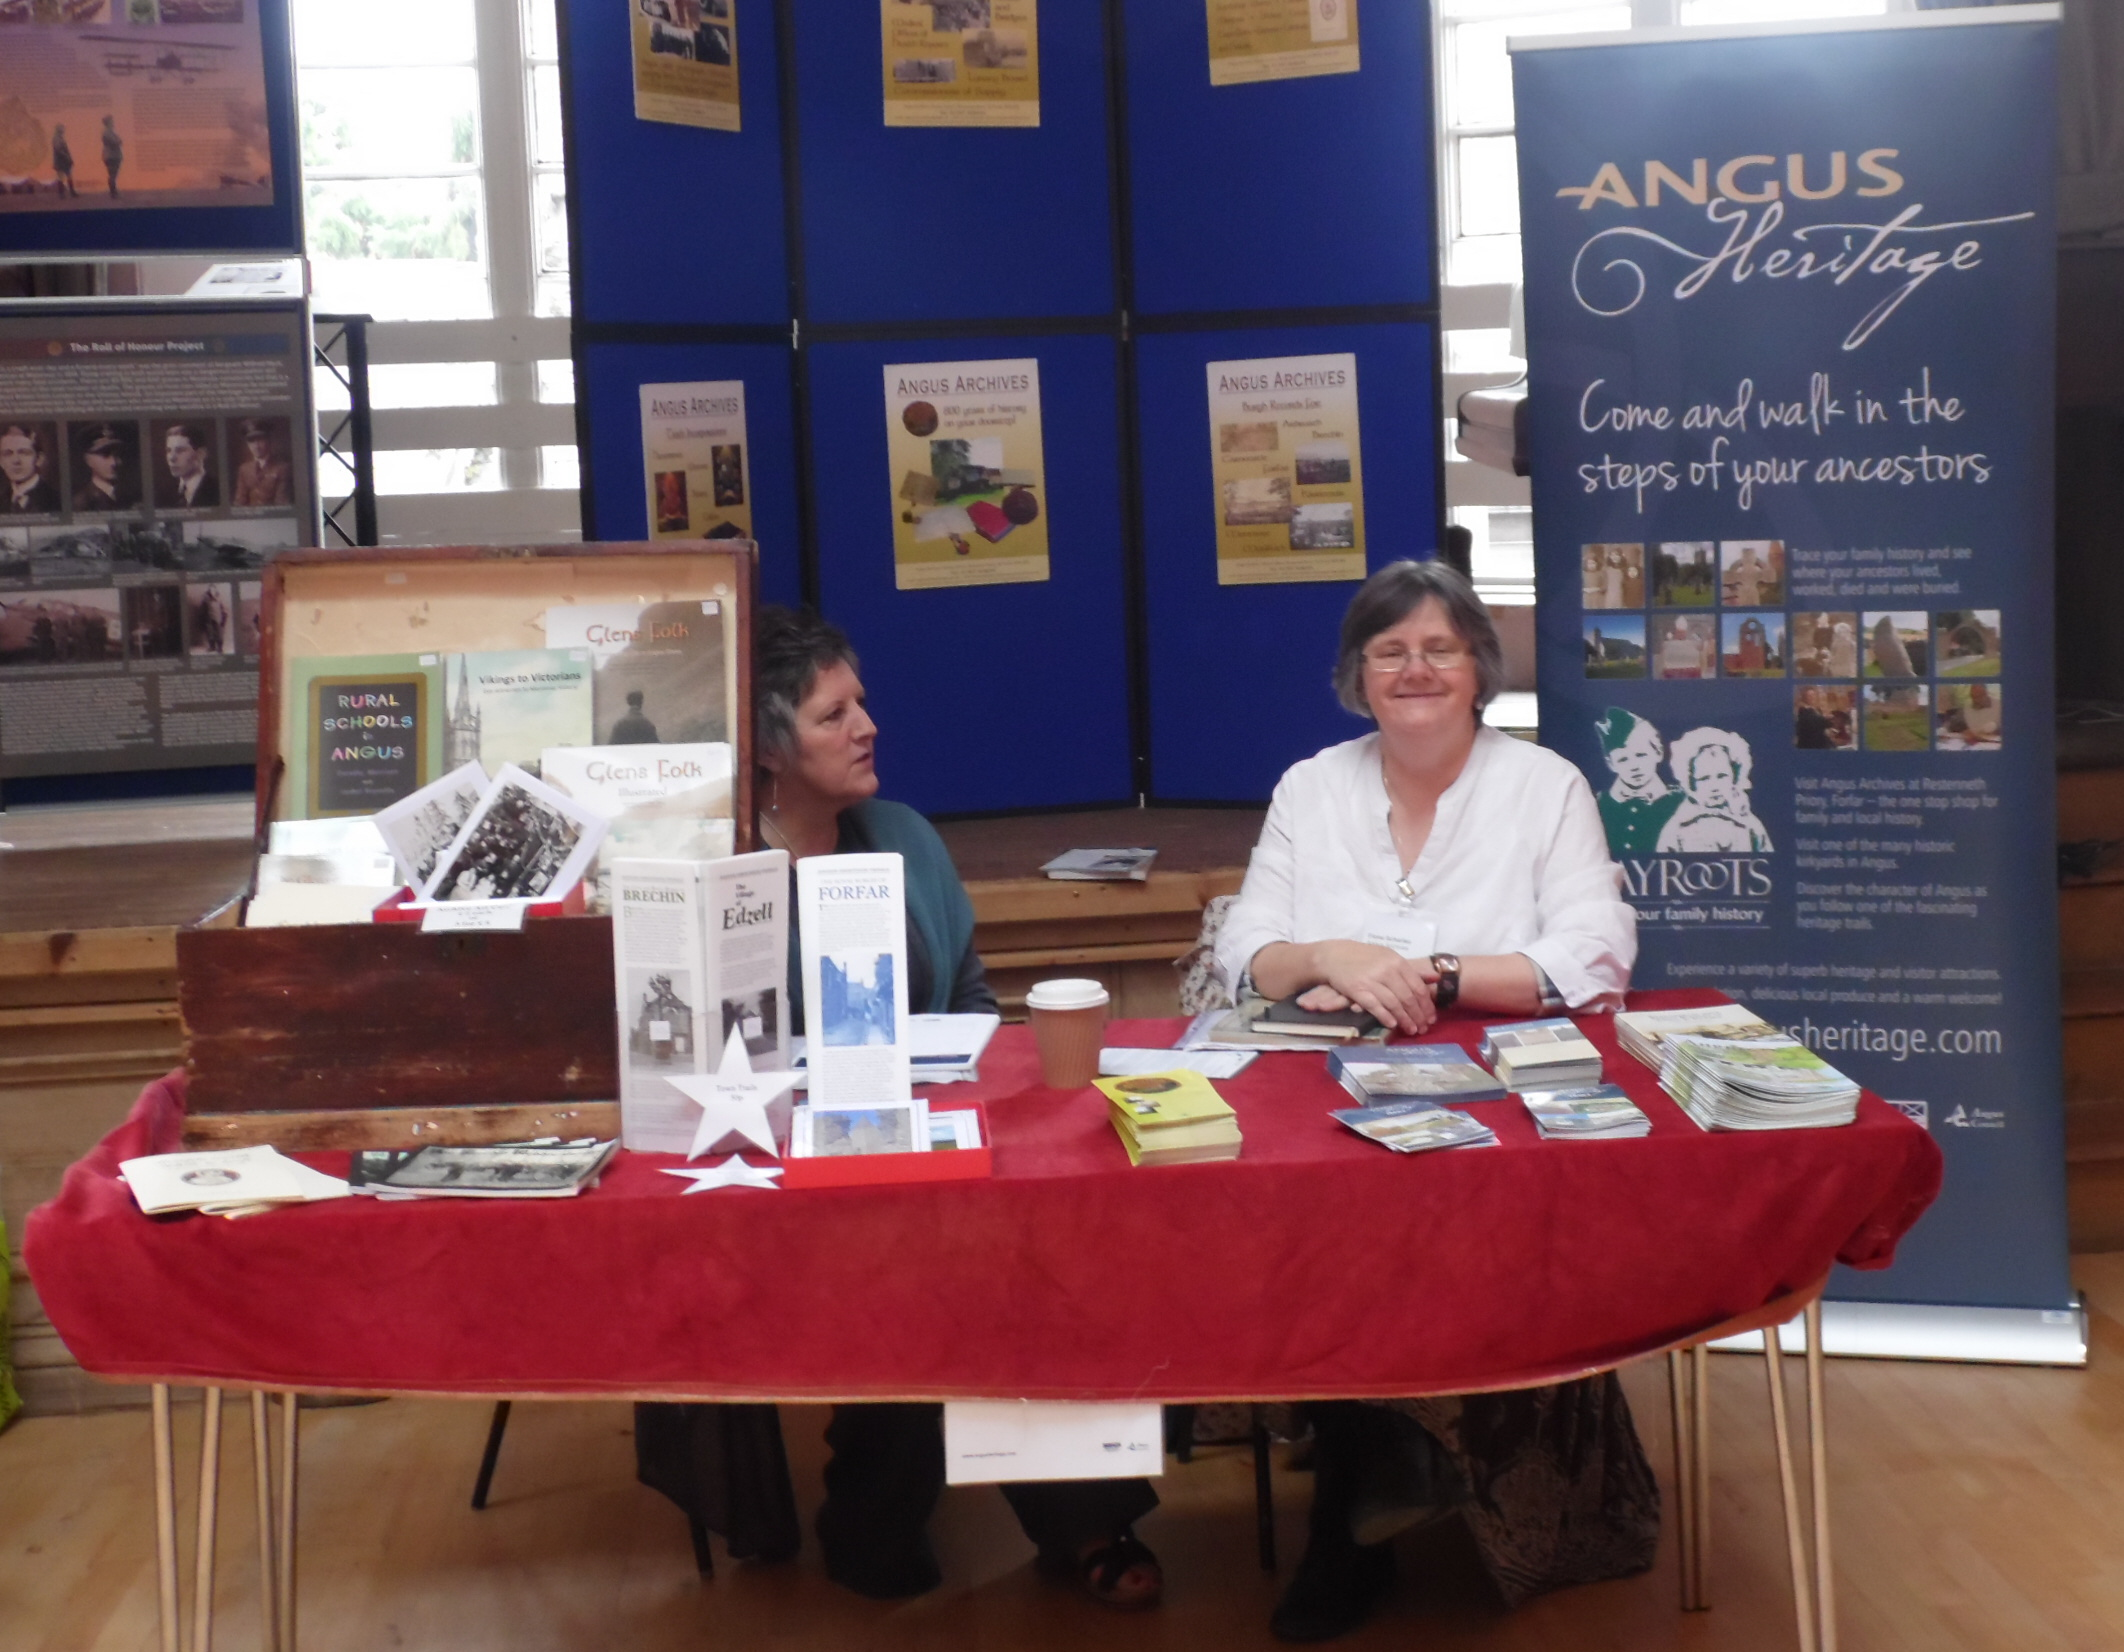 Angus Archives table